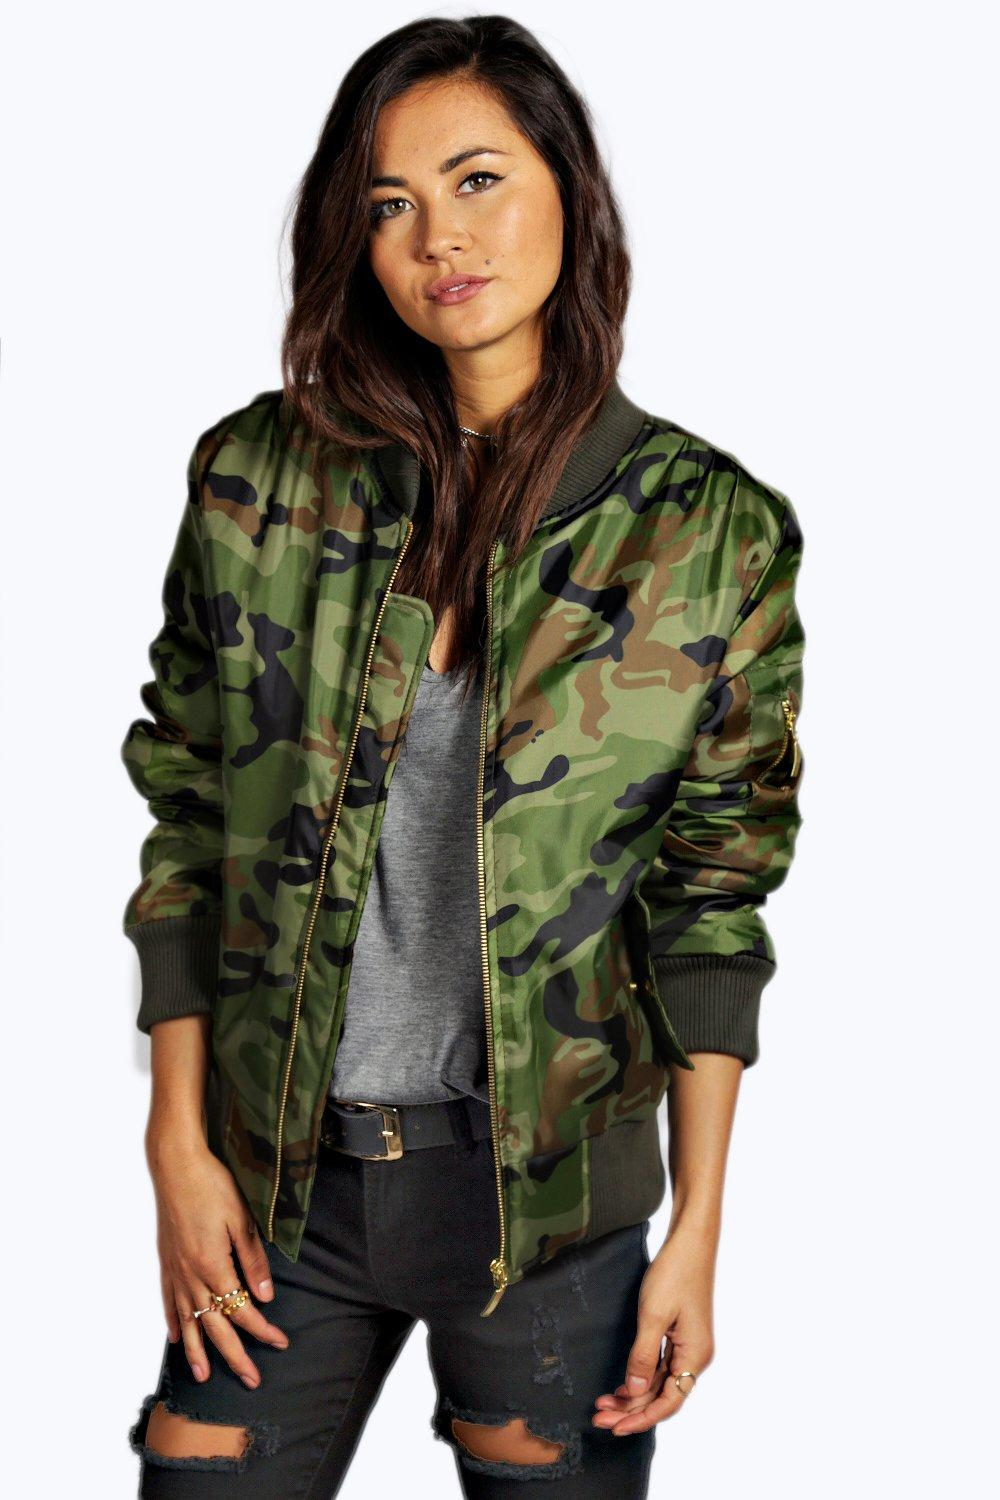 e8c3991494d7a Womens Multi Mya Camo MA1 Bomber Jacket. Hover to zoom